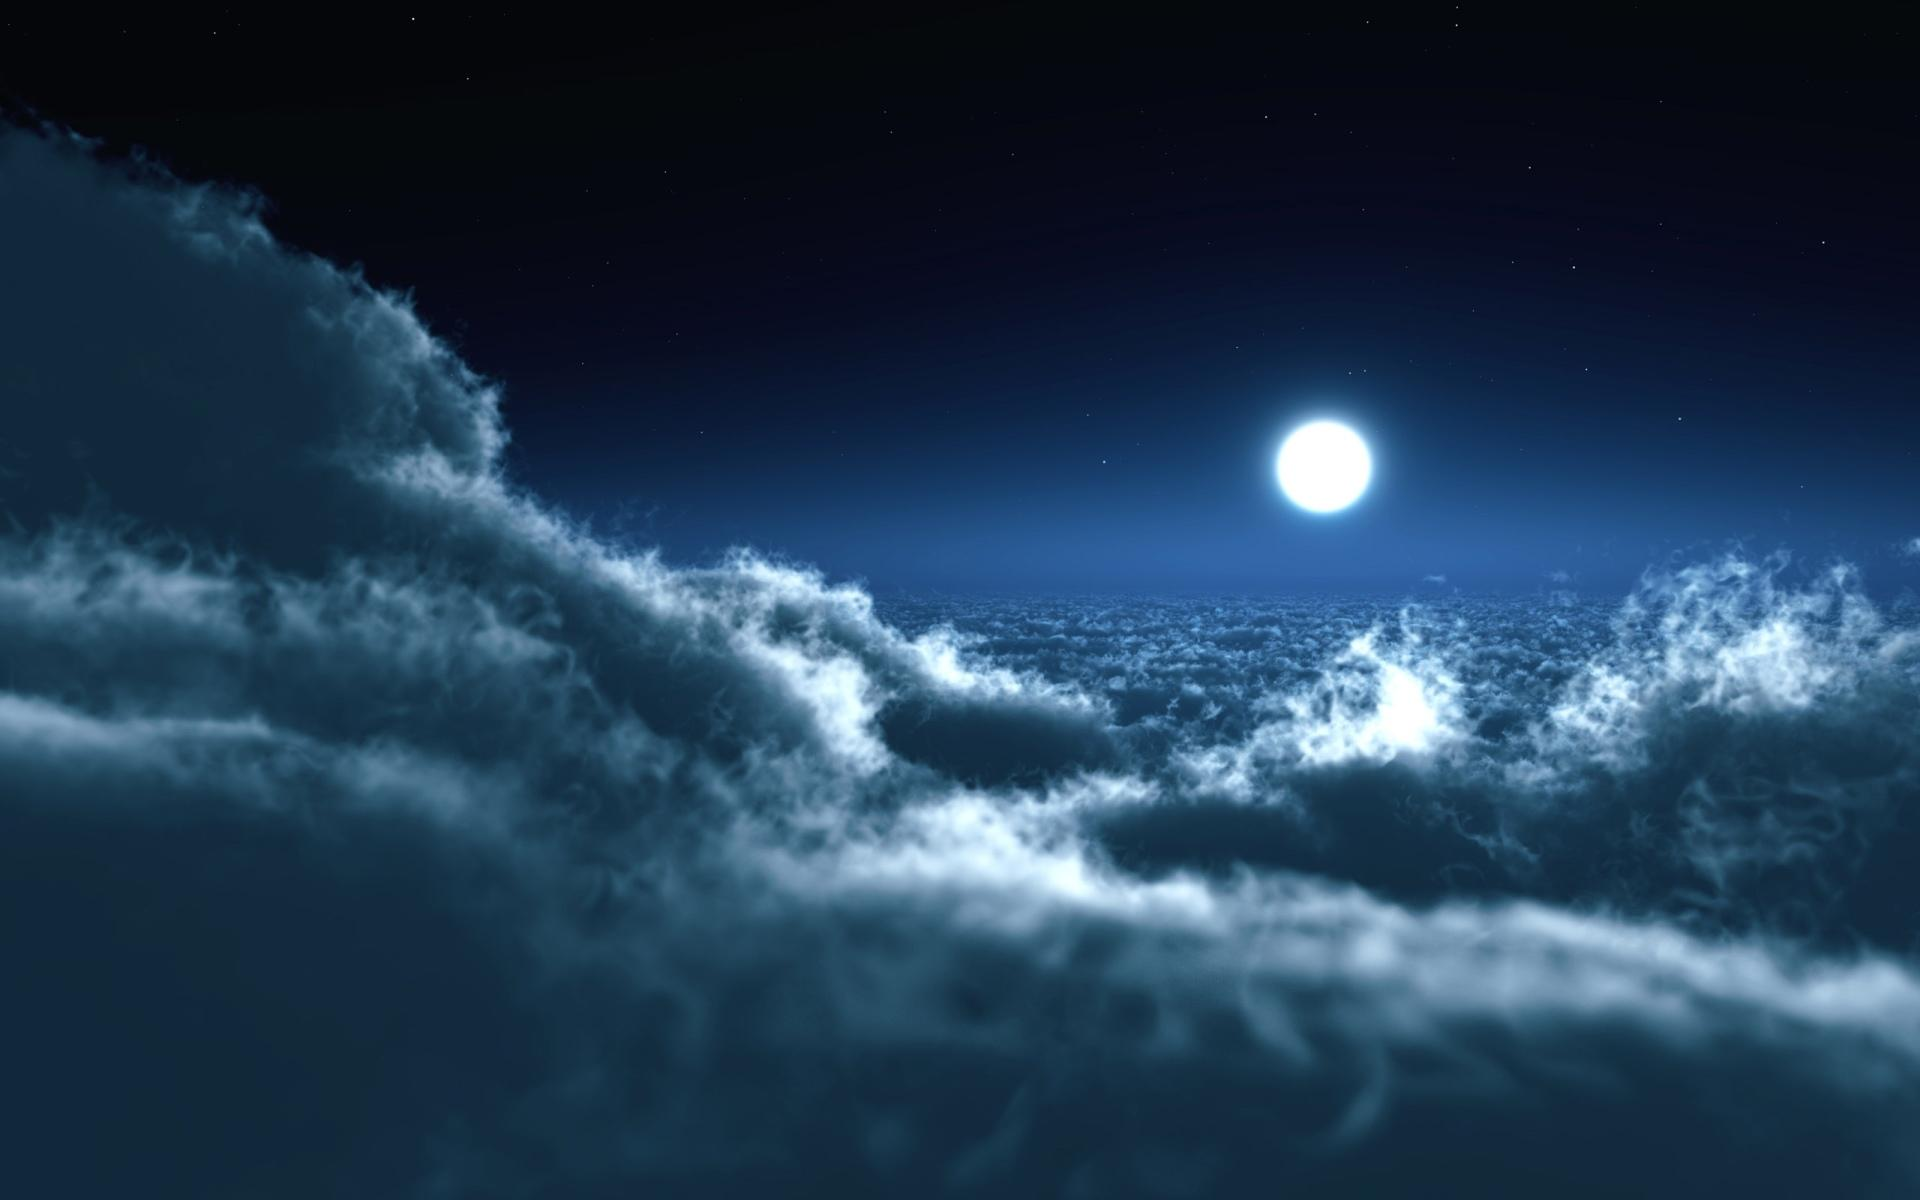 Night Artistic wallpapers HD quality